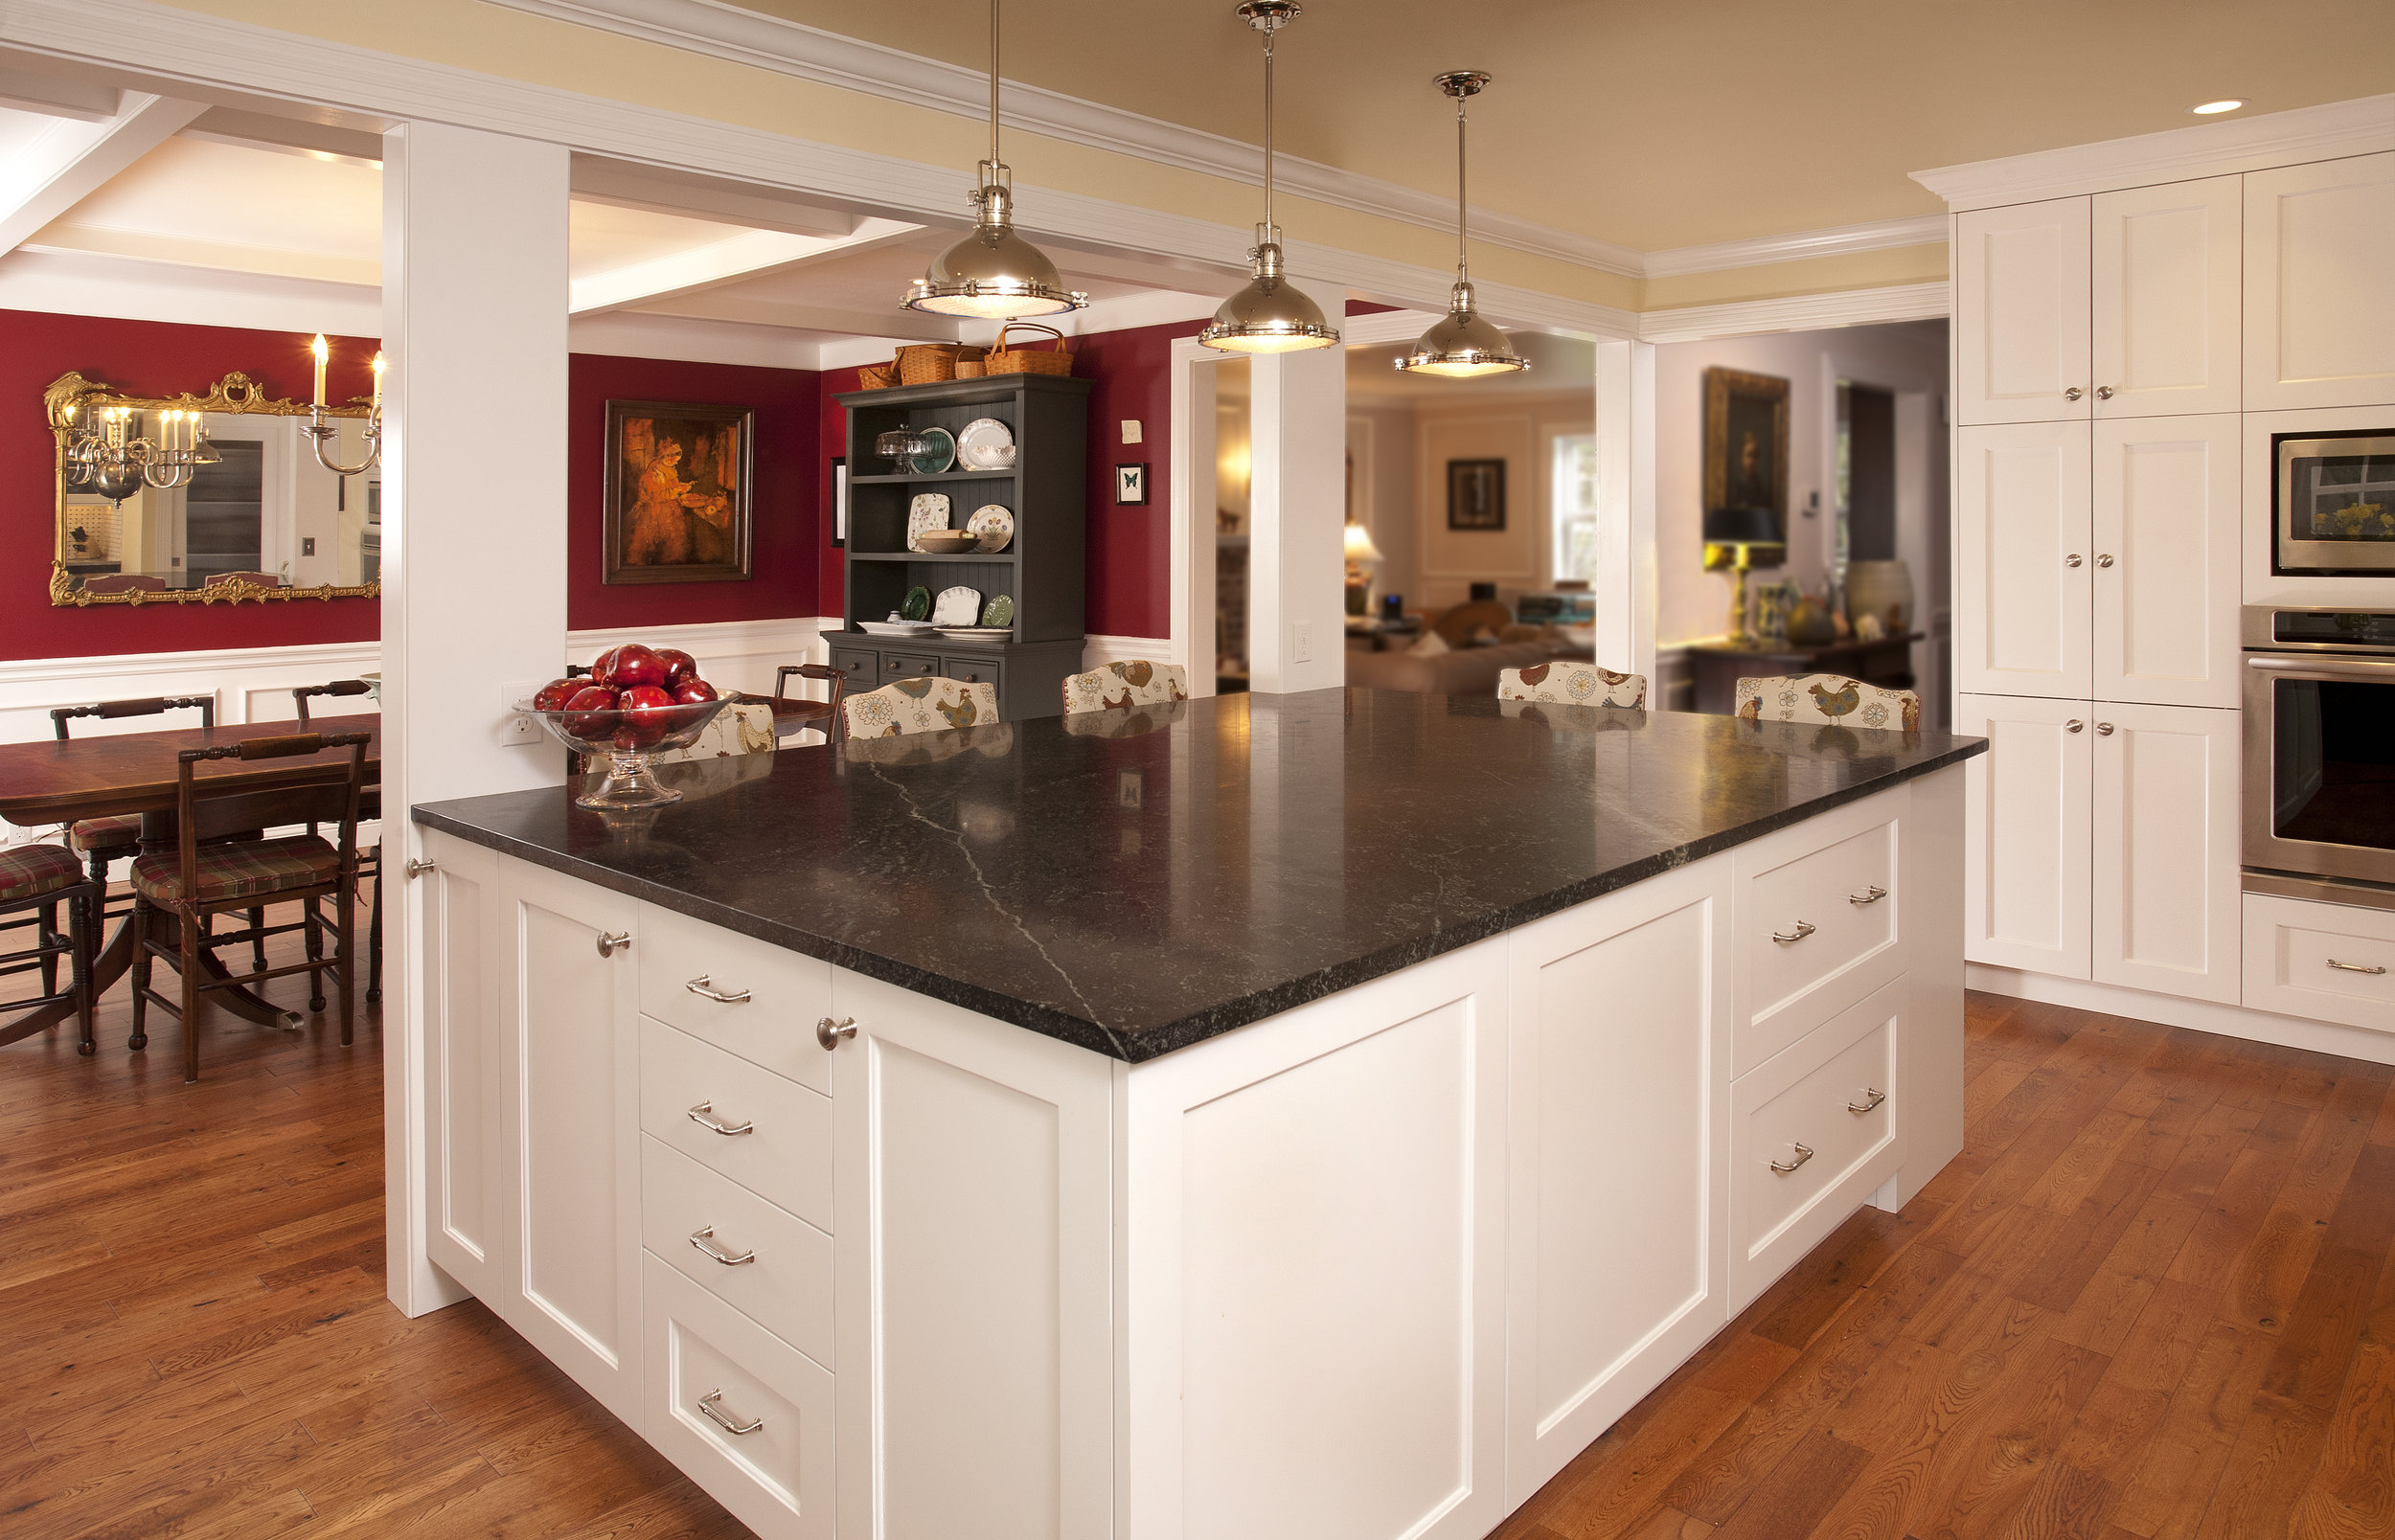 Woodiville Country Kitchen 2.jpg